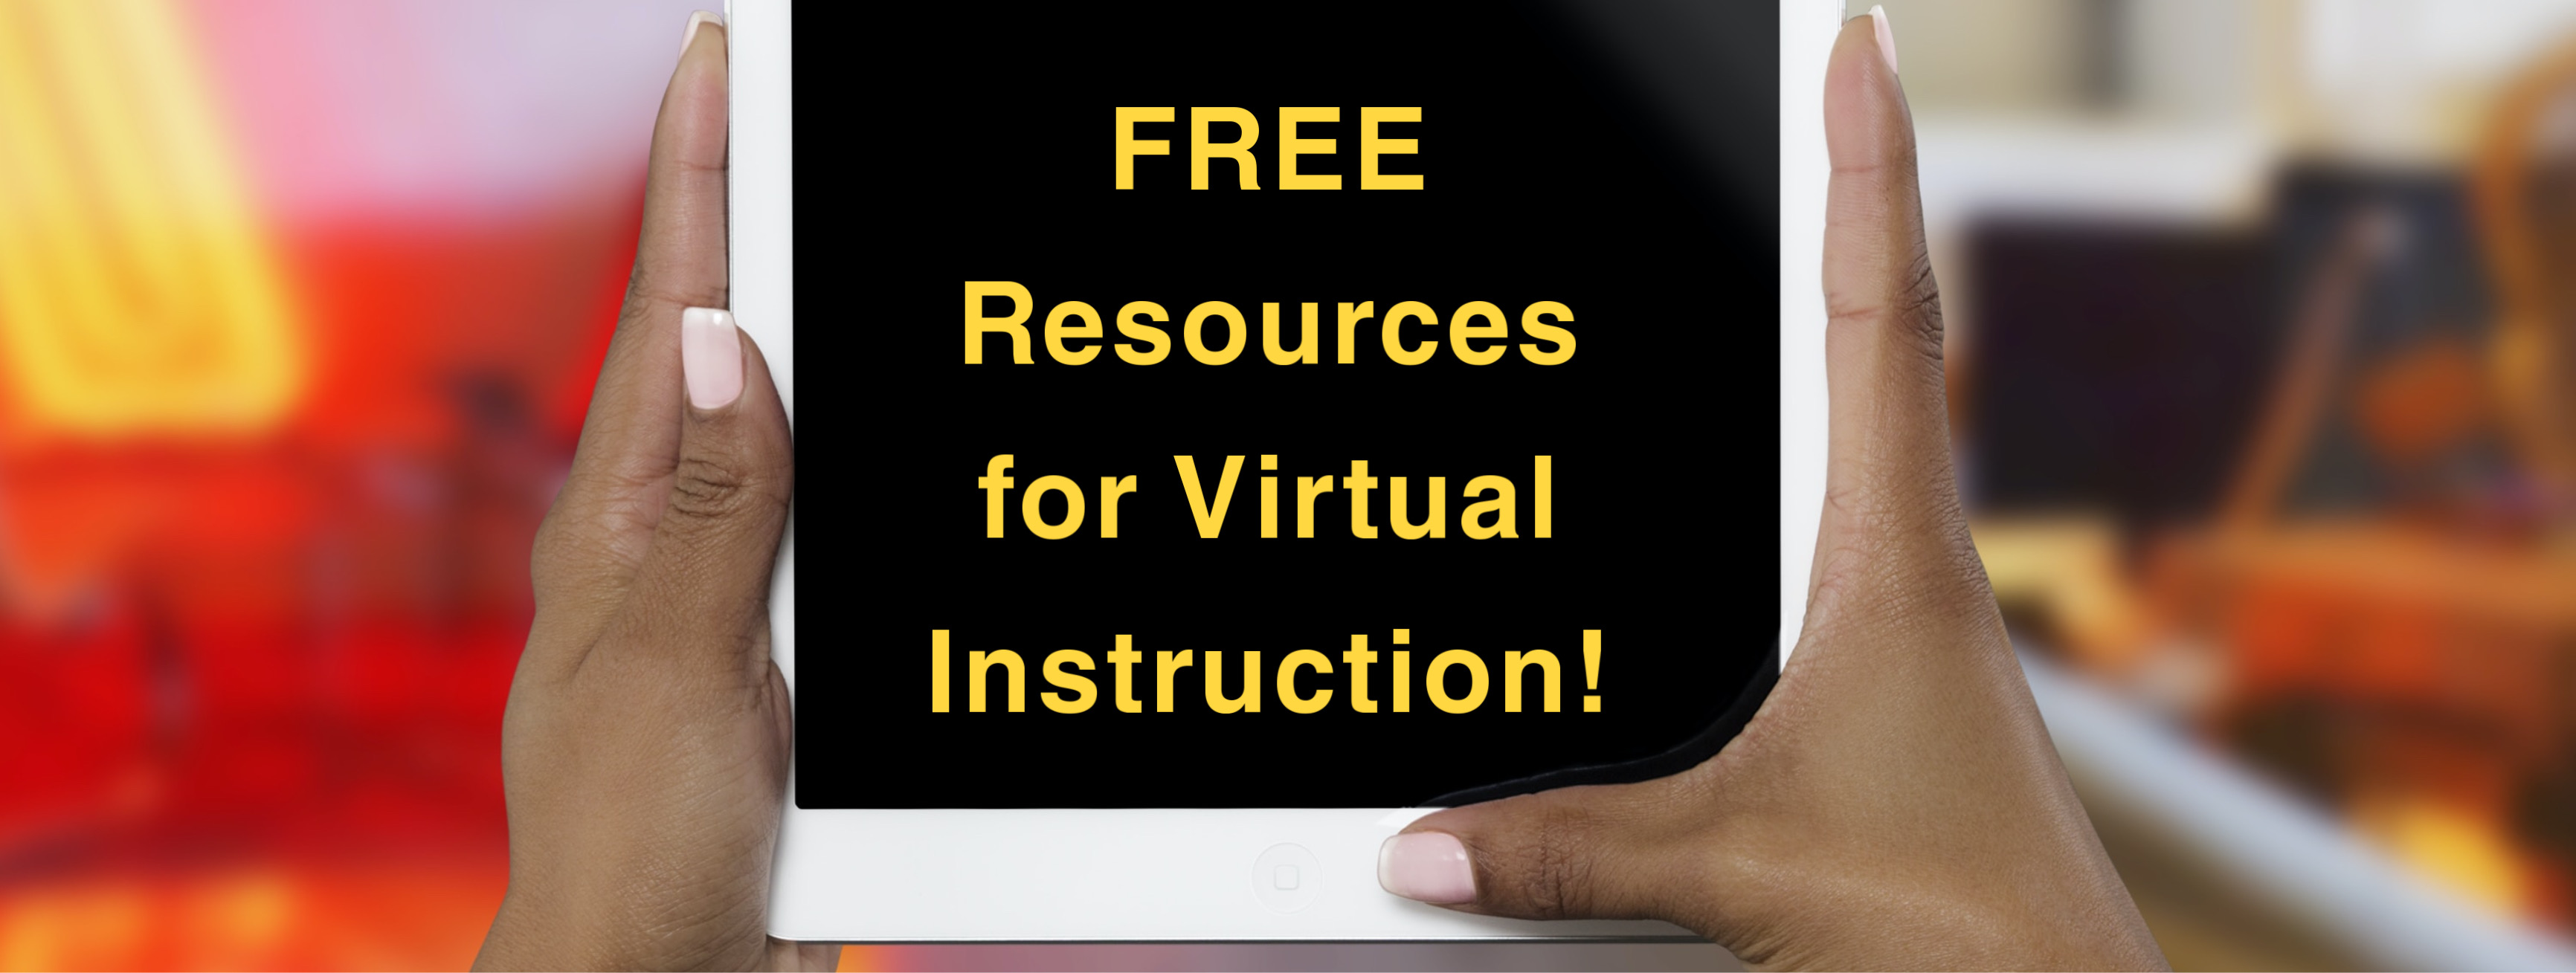 Click to access free resources for virtual instruction.